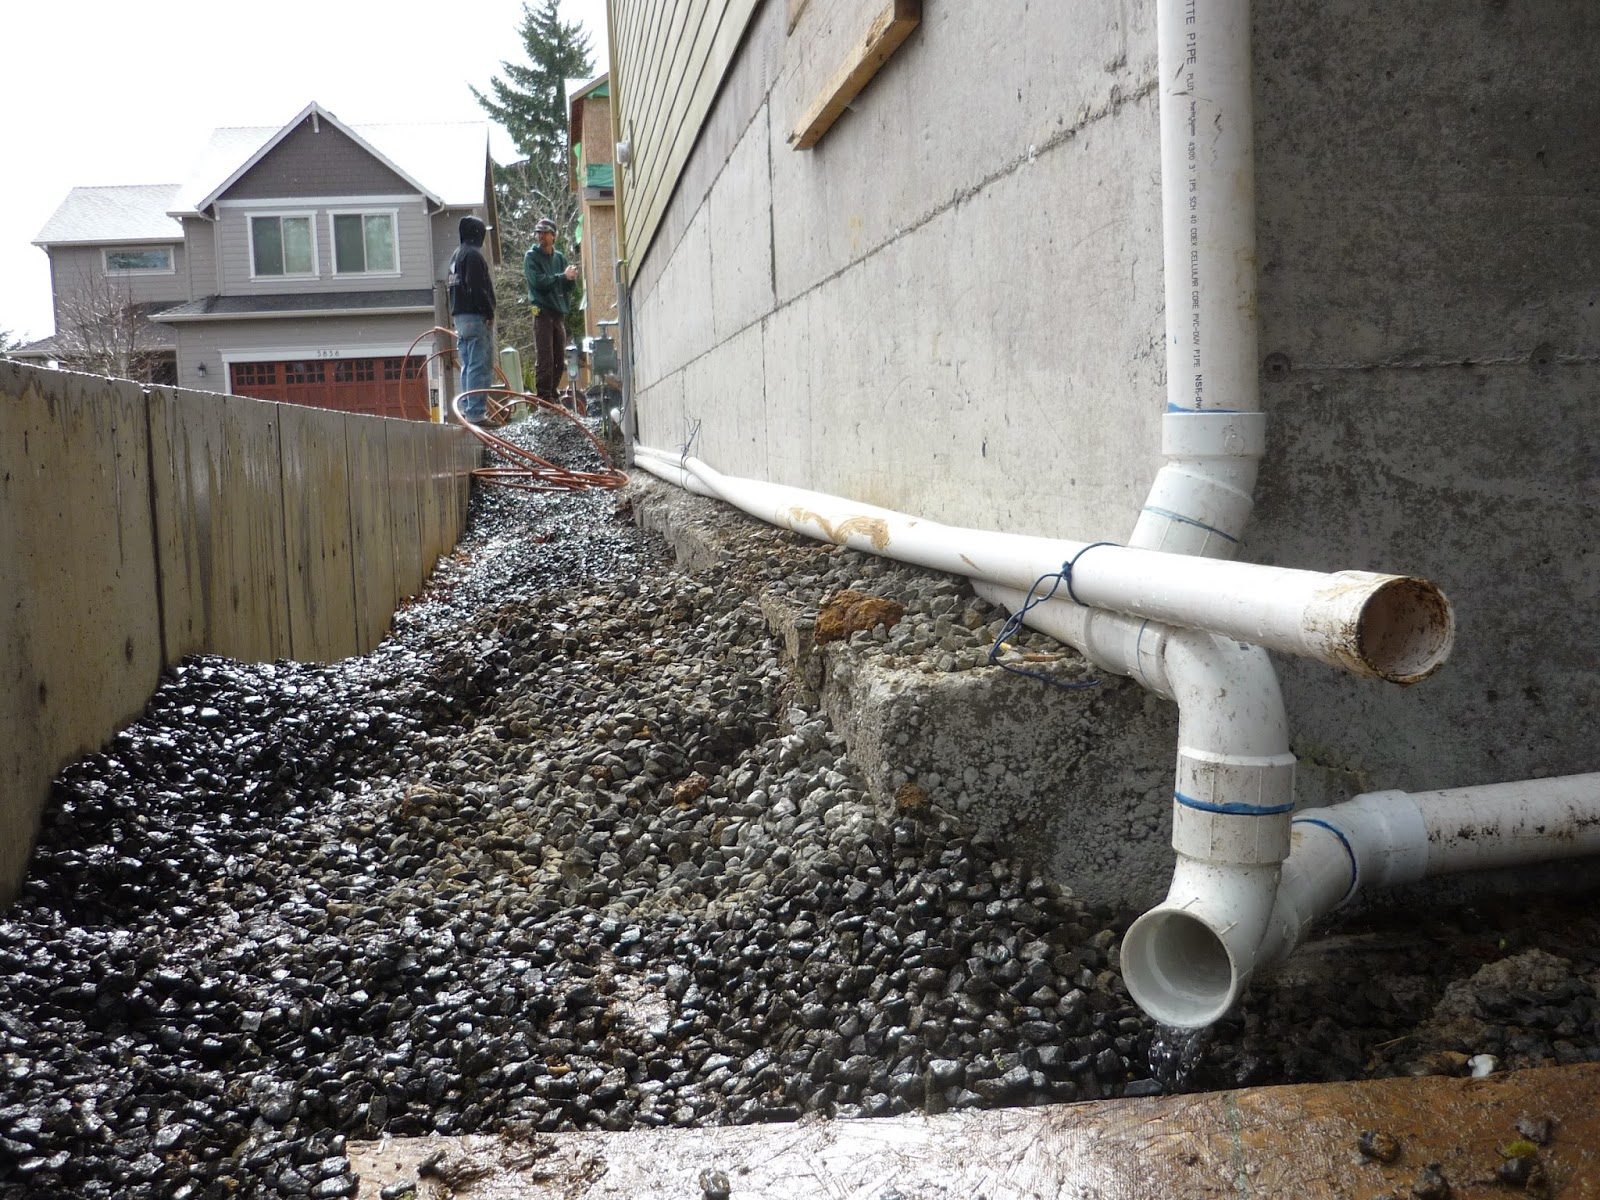 Rain Water Pipe - Acpfoto